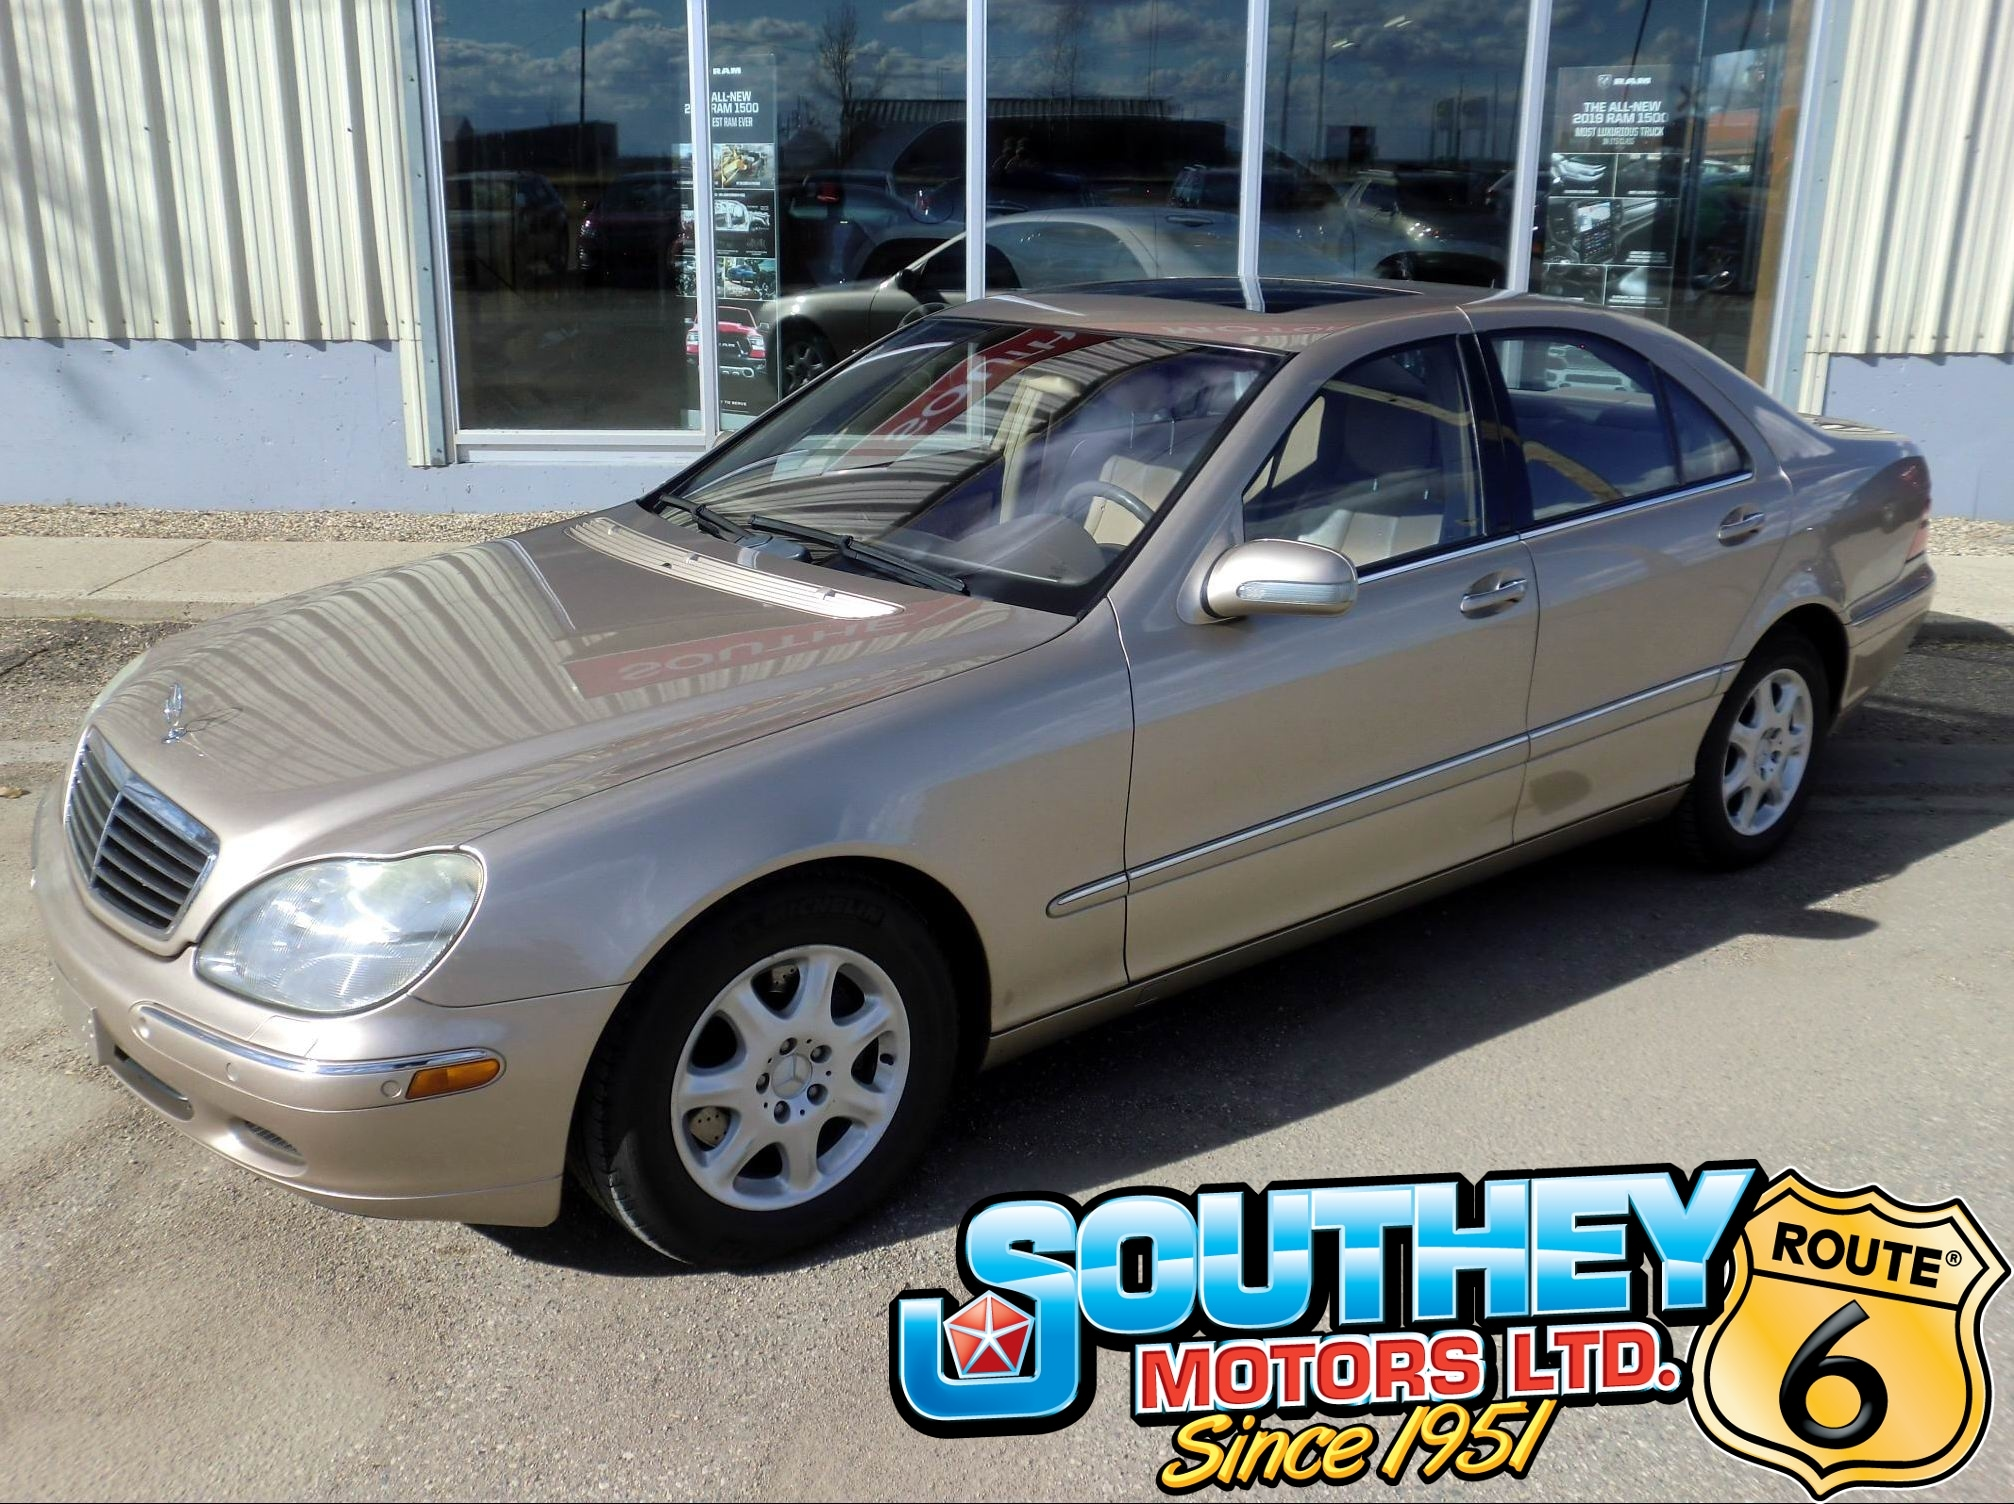 2001 Used Mercedes Benz S Class S430 Fully Loaded For Sale In Southey Sk Used Car Dealer Near Moose Jaw Regina 13797